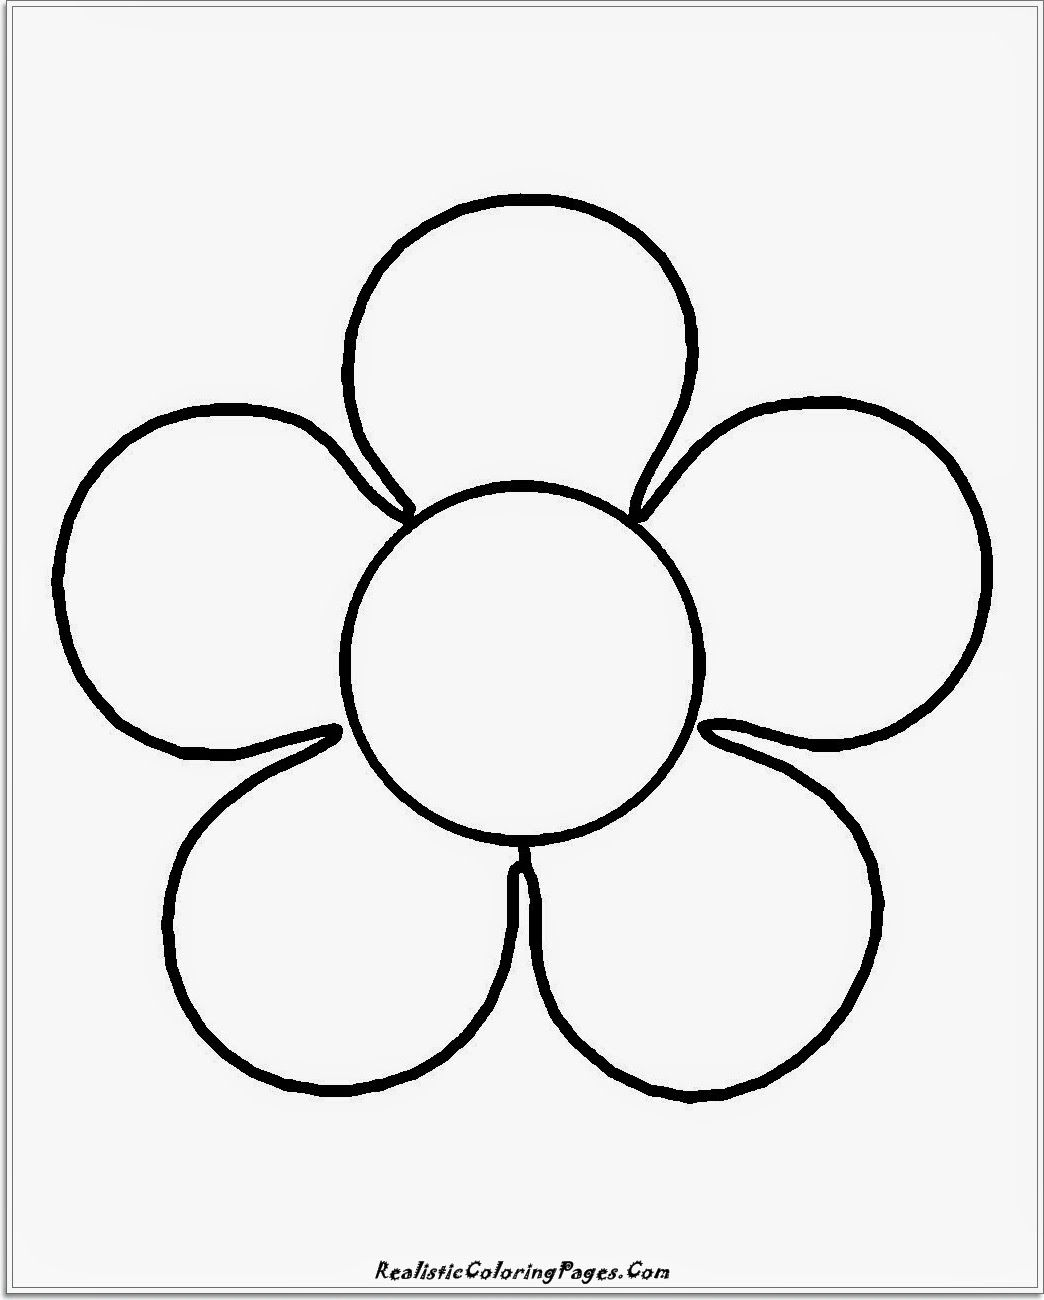 easy printable flower coloring pages - photo#17